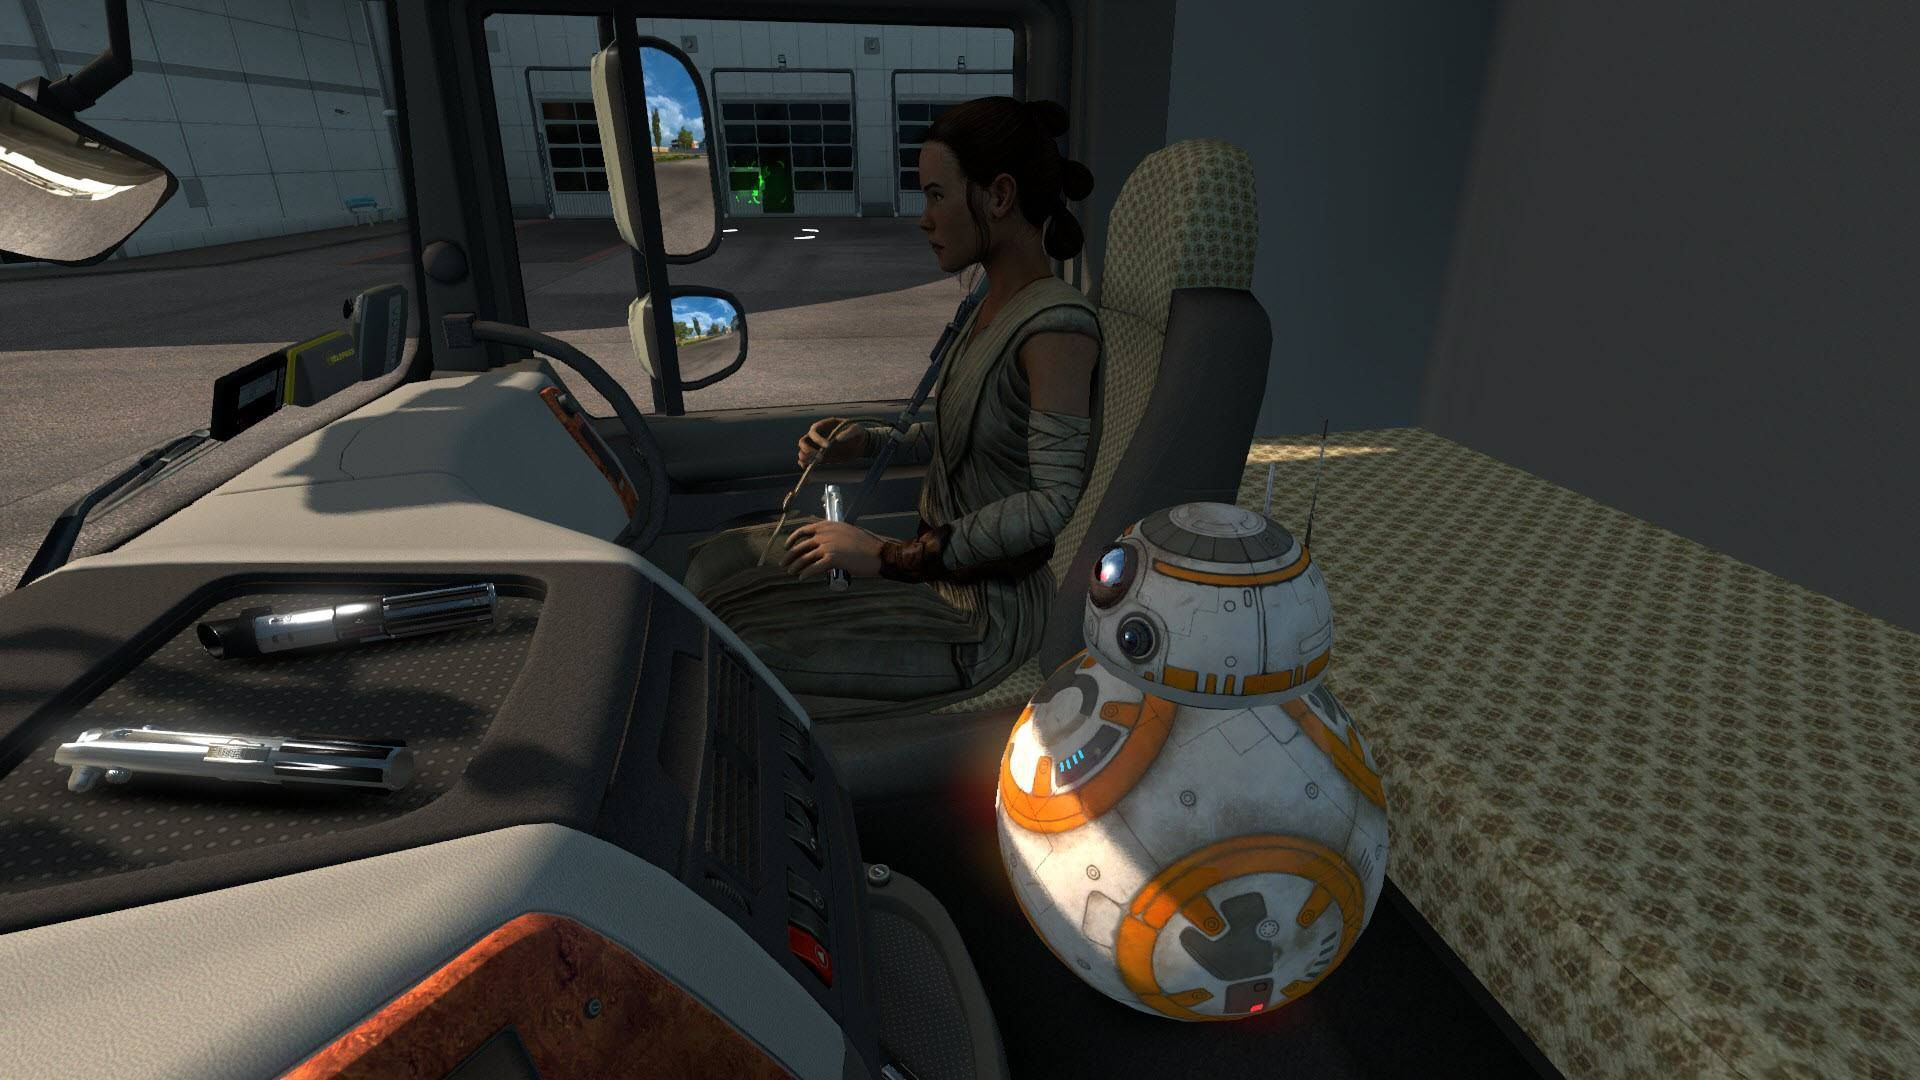 A Euro Truck Simulator 2 mod showing BB-8 and Rey from Star Wars sitting in a truck cab